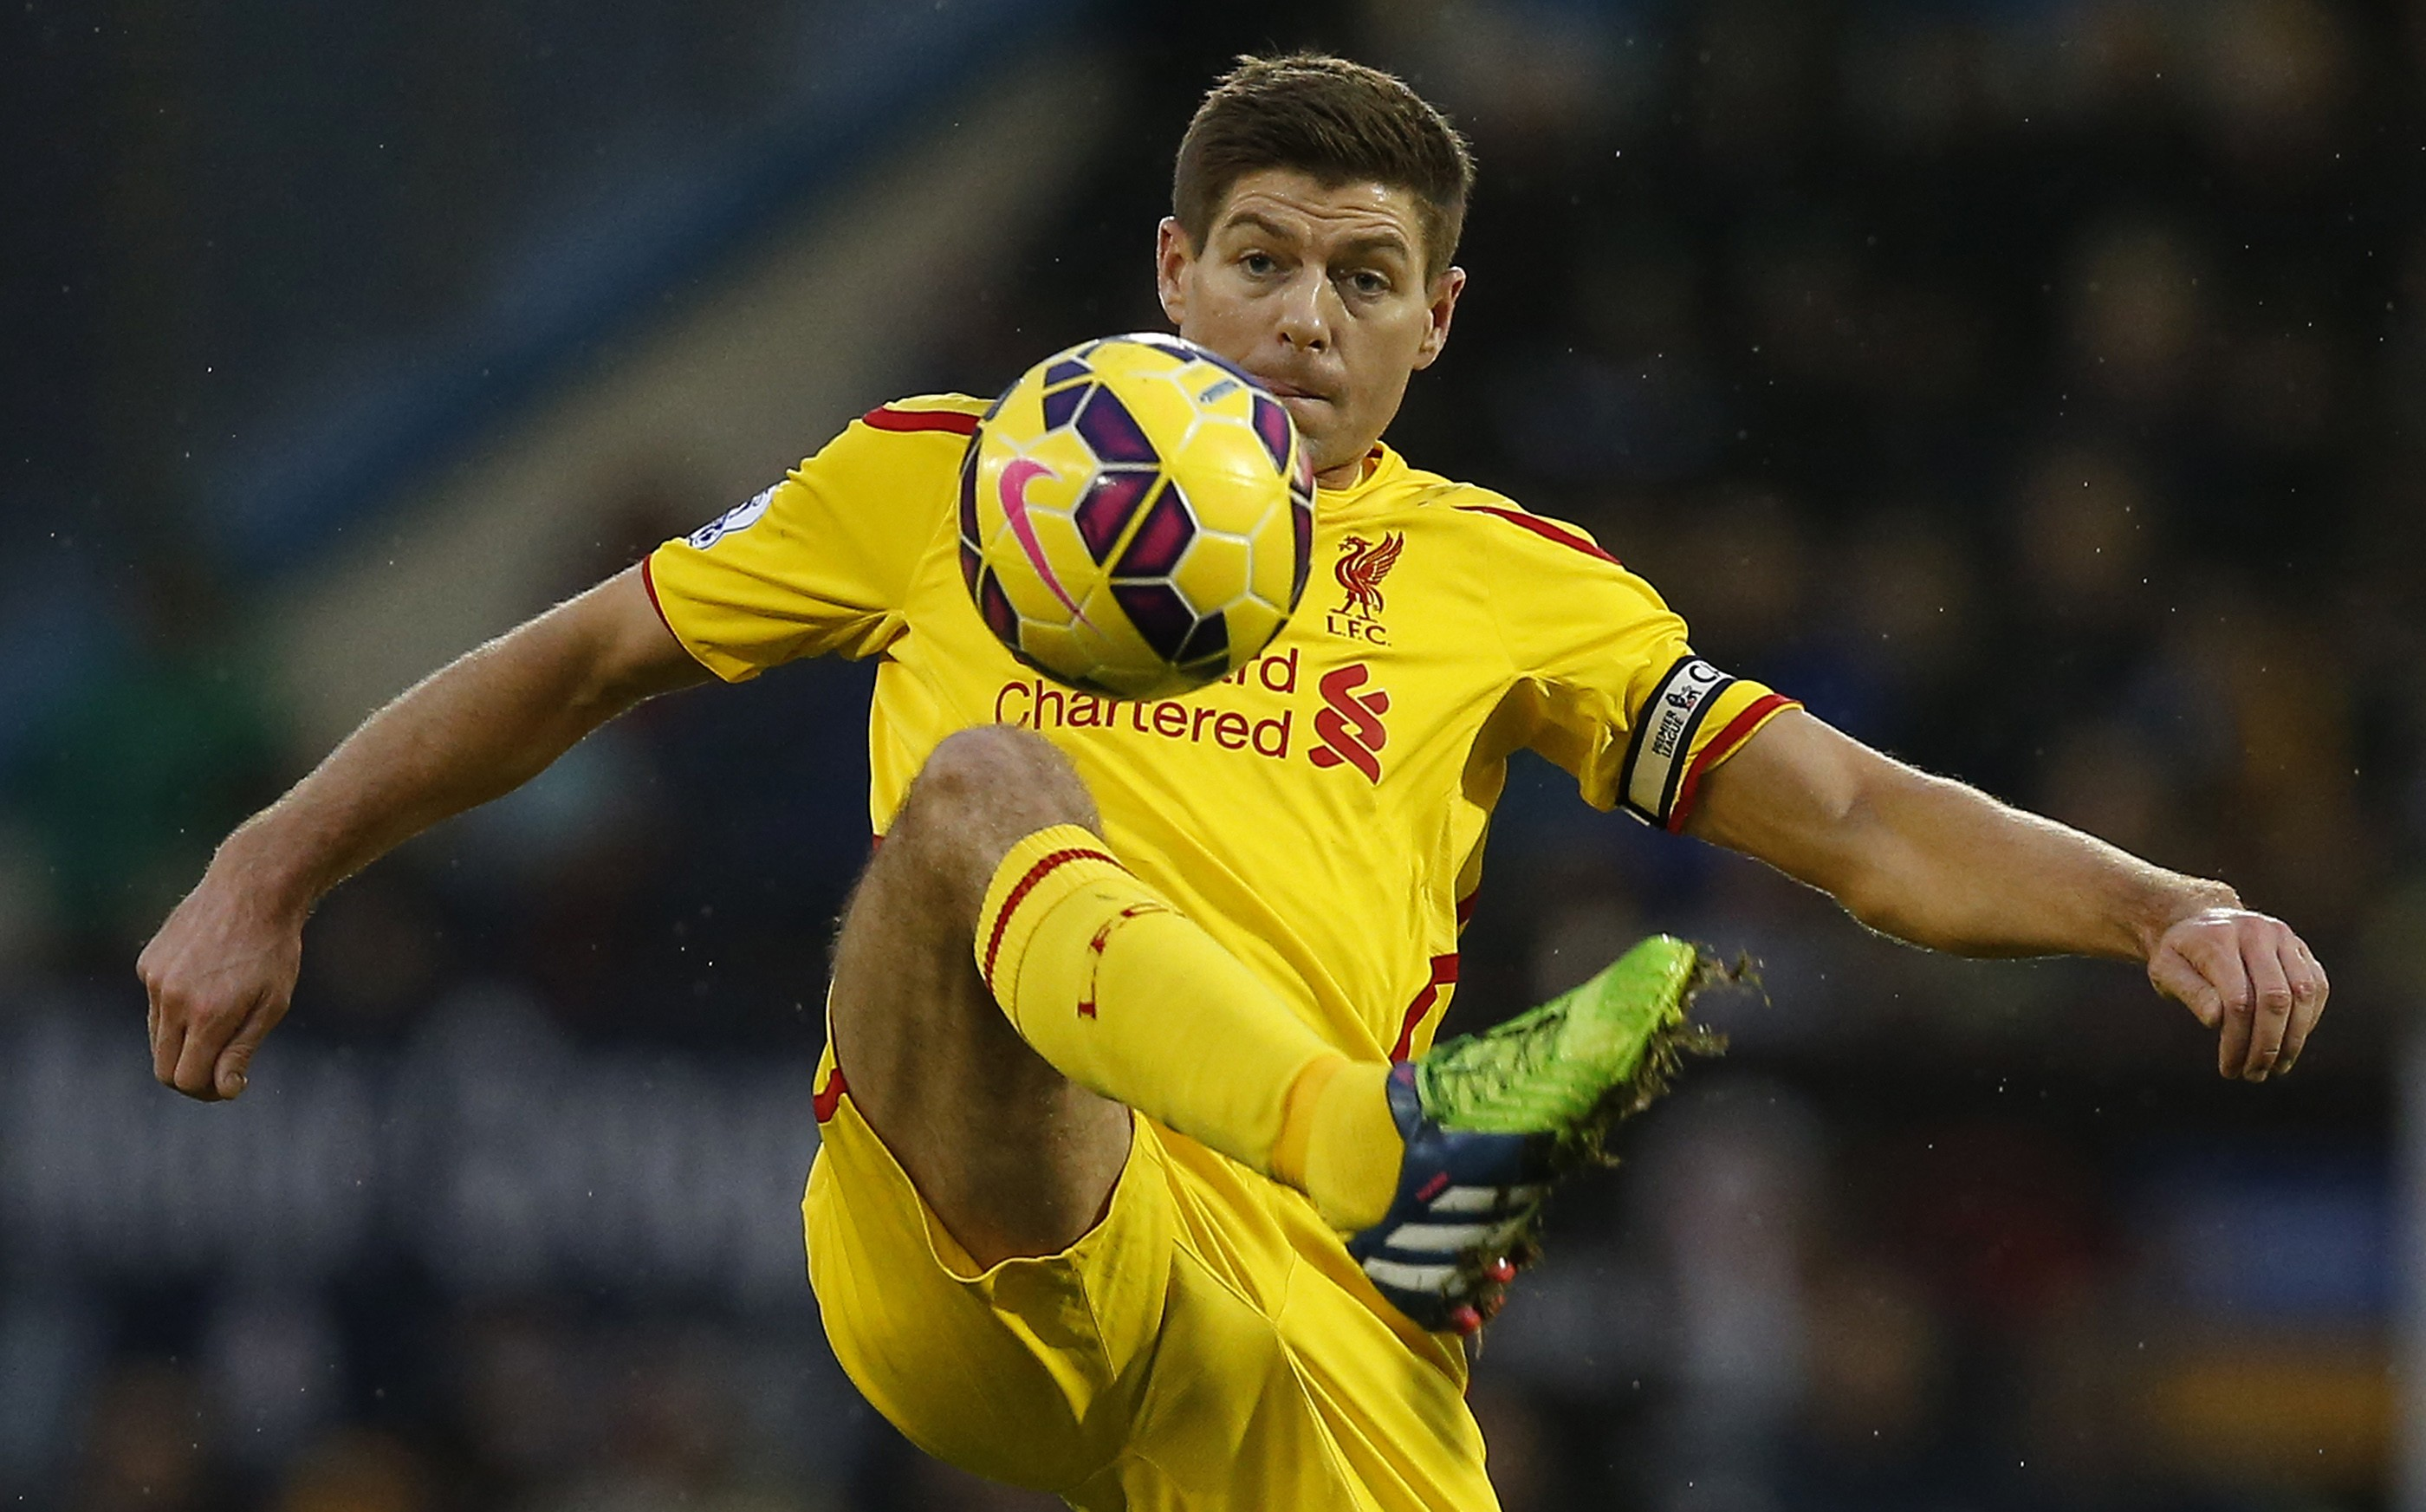 Liverpool's Steven Gerrard controls the ball during their English Premier League soccer match against Burnley at Turf Moor in Burnley